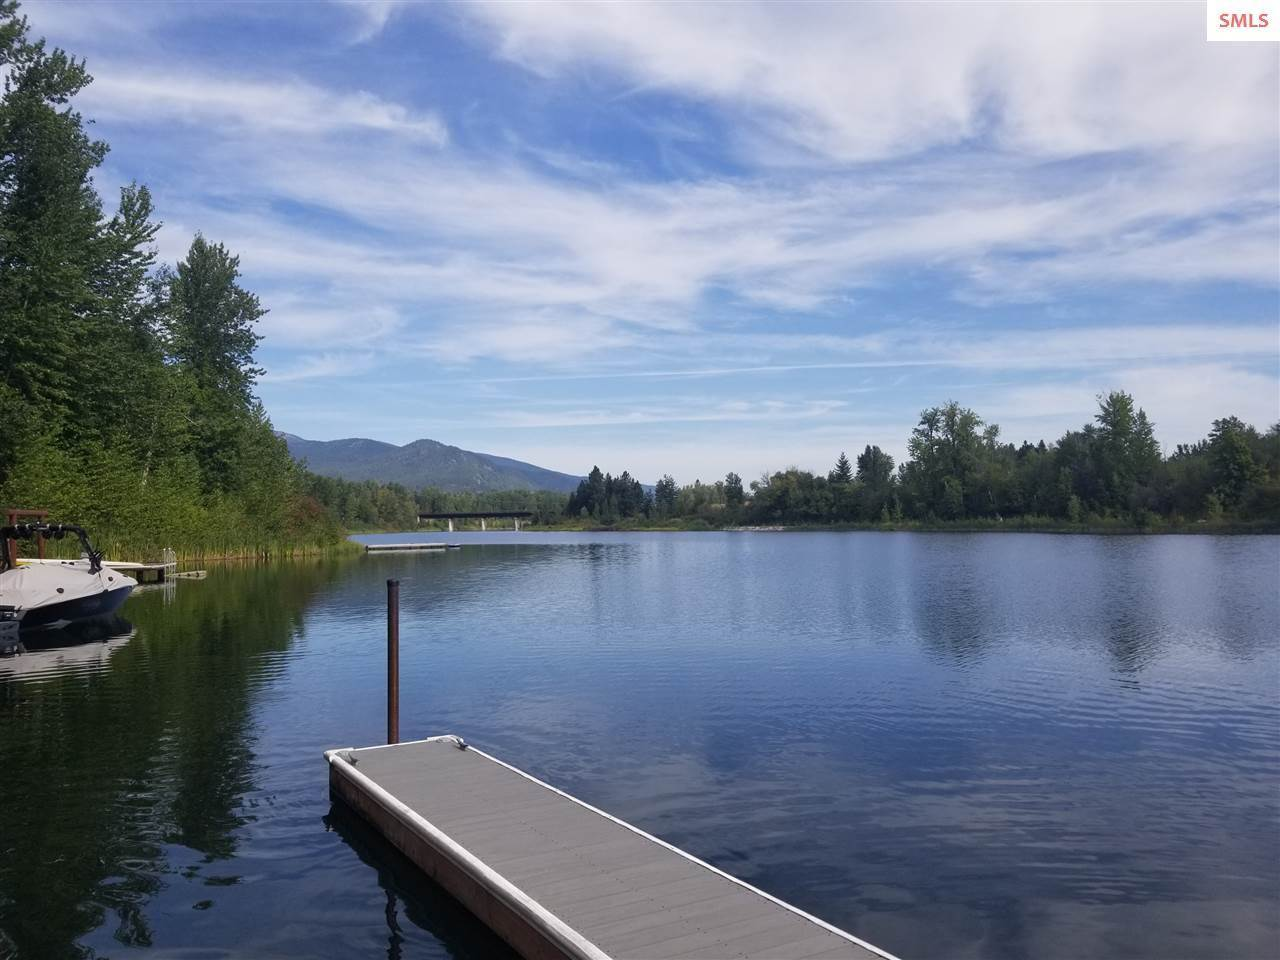 720 N 3rd Ave #10, Sandpoint, ID 63864